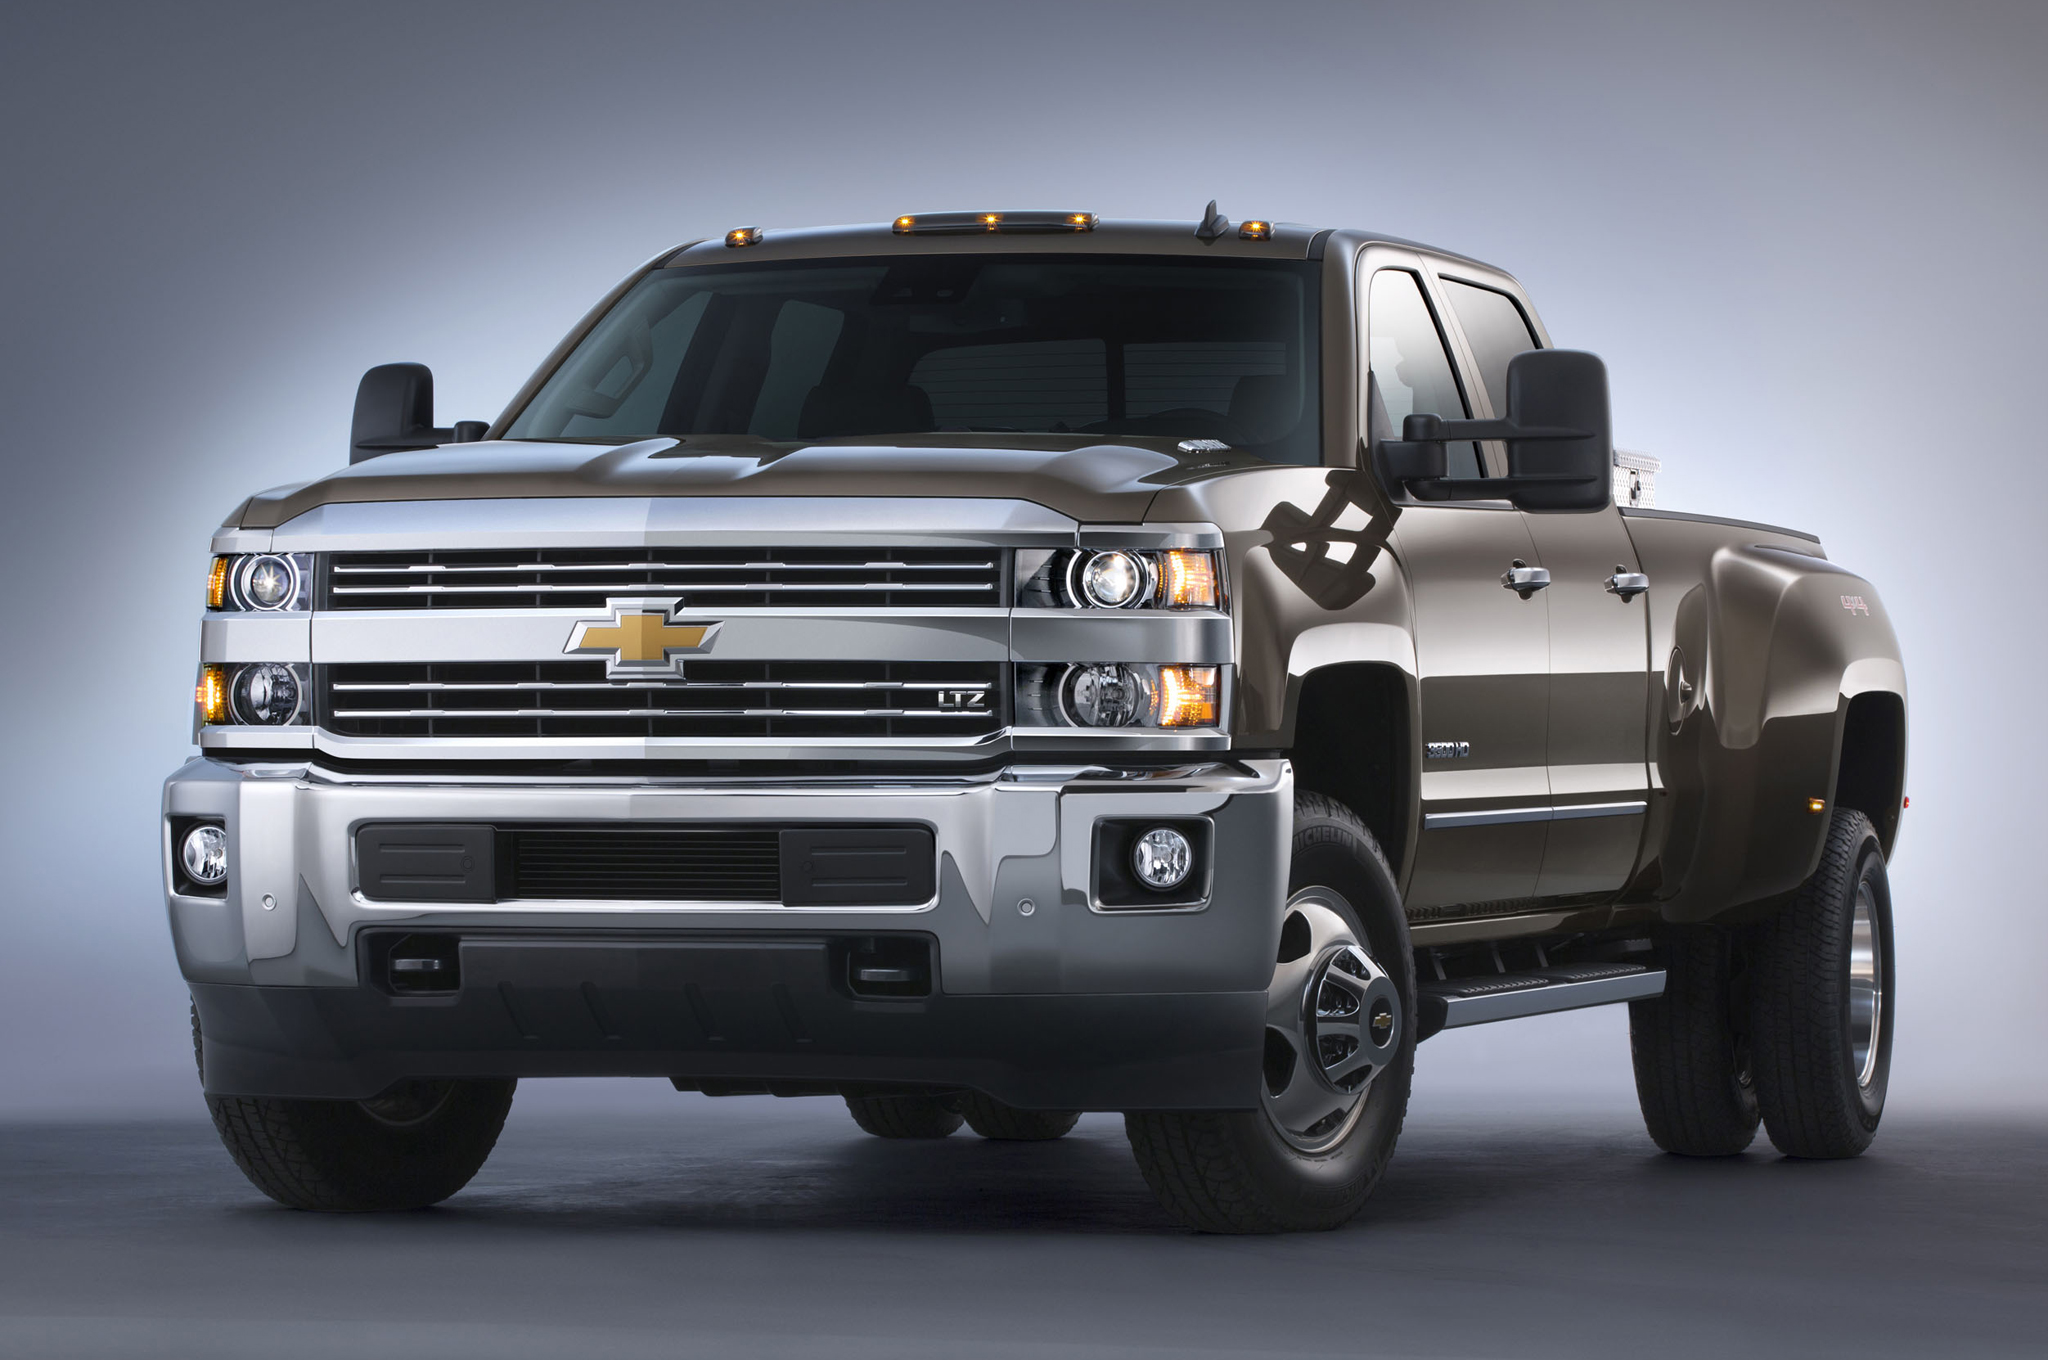 2015 Chevrolet Silverado Hd (View 6 of 6)